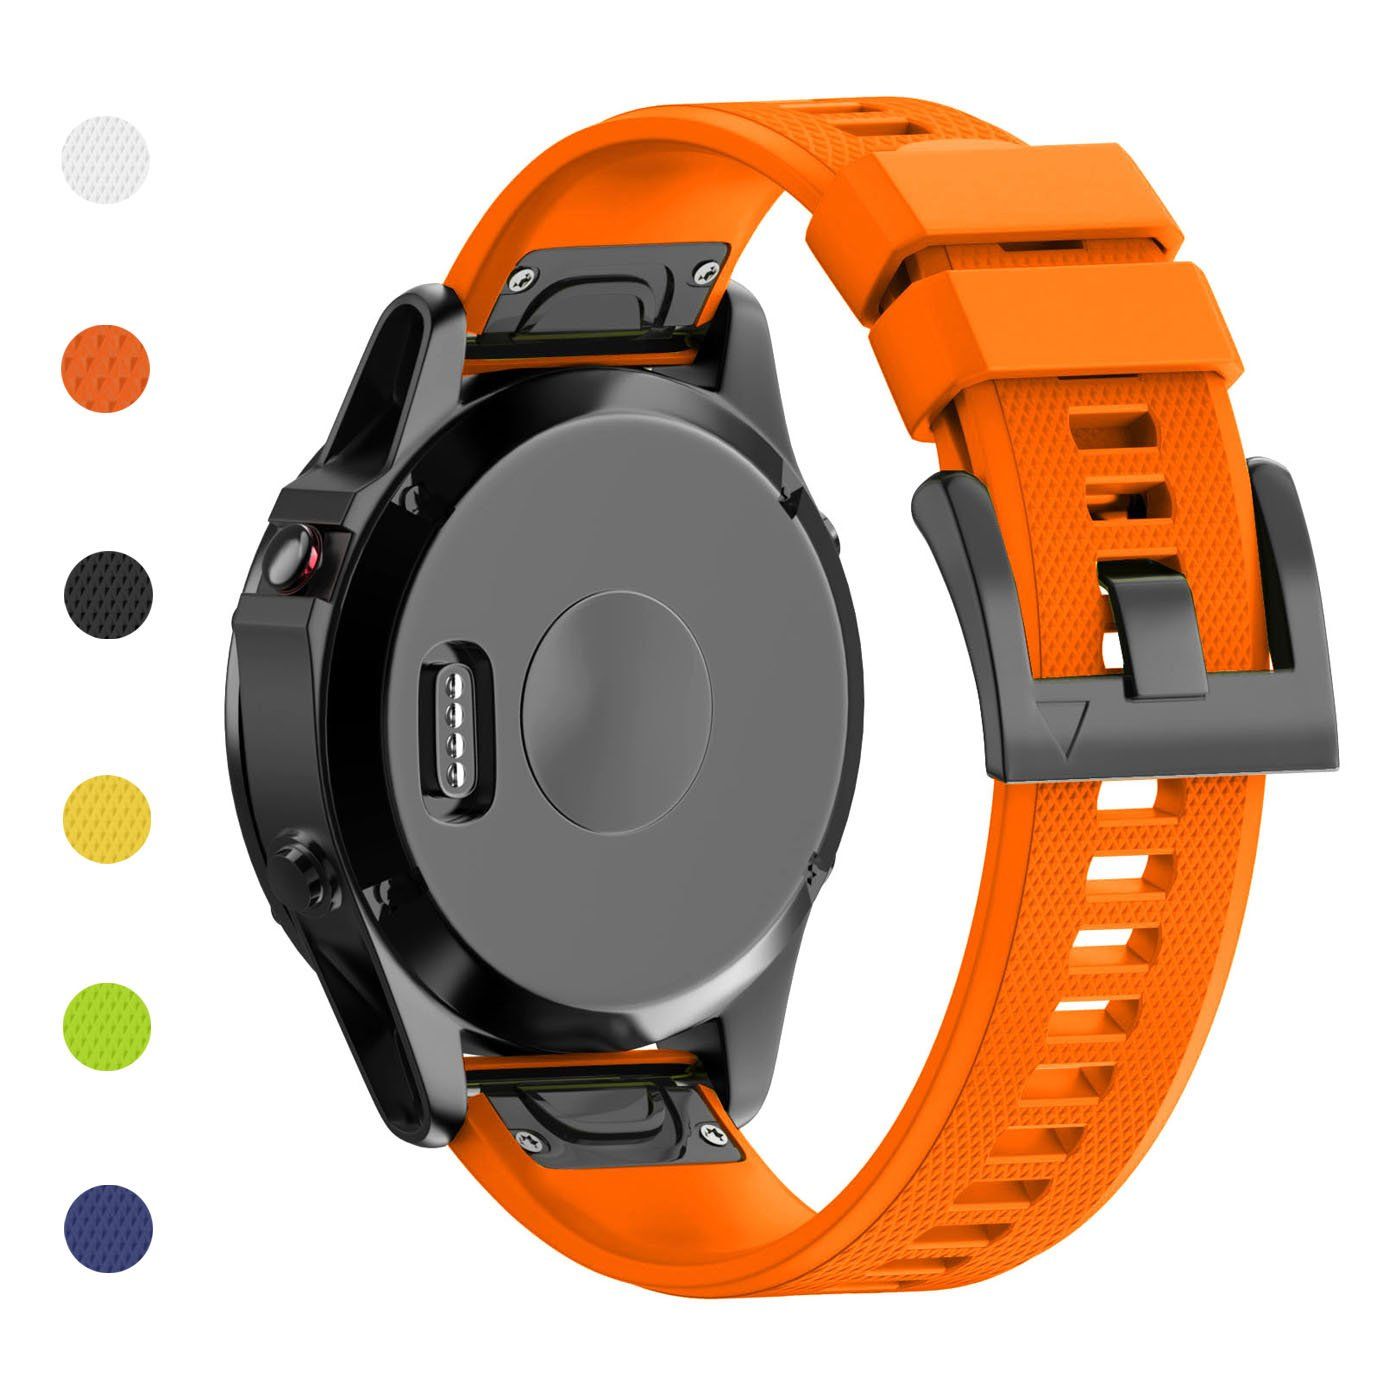 Fashioneey Compatible for Garmin Fenix 5 Band,Quick Release 22mm Silicone Smart Watch Replacement Strap Compatible for Garmin Fenix 5 / Forerunner 935